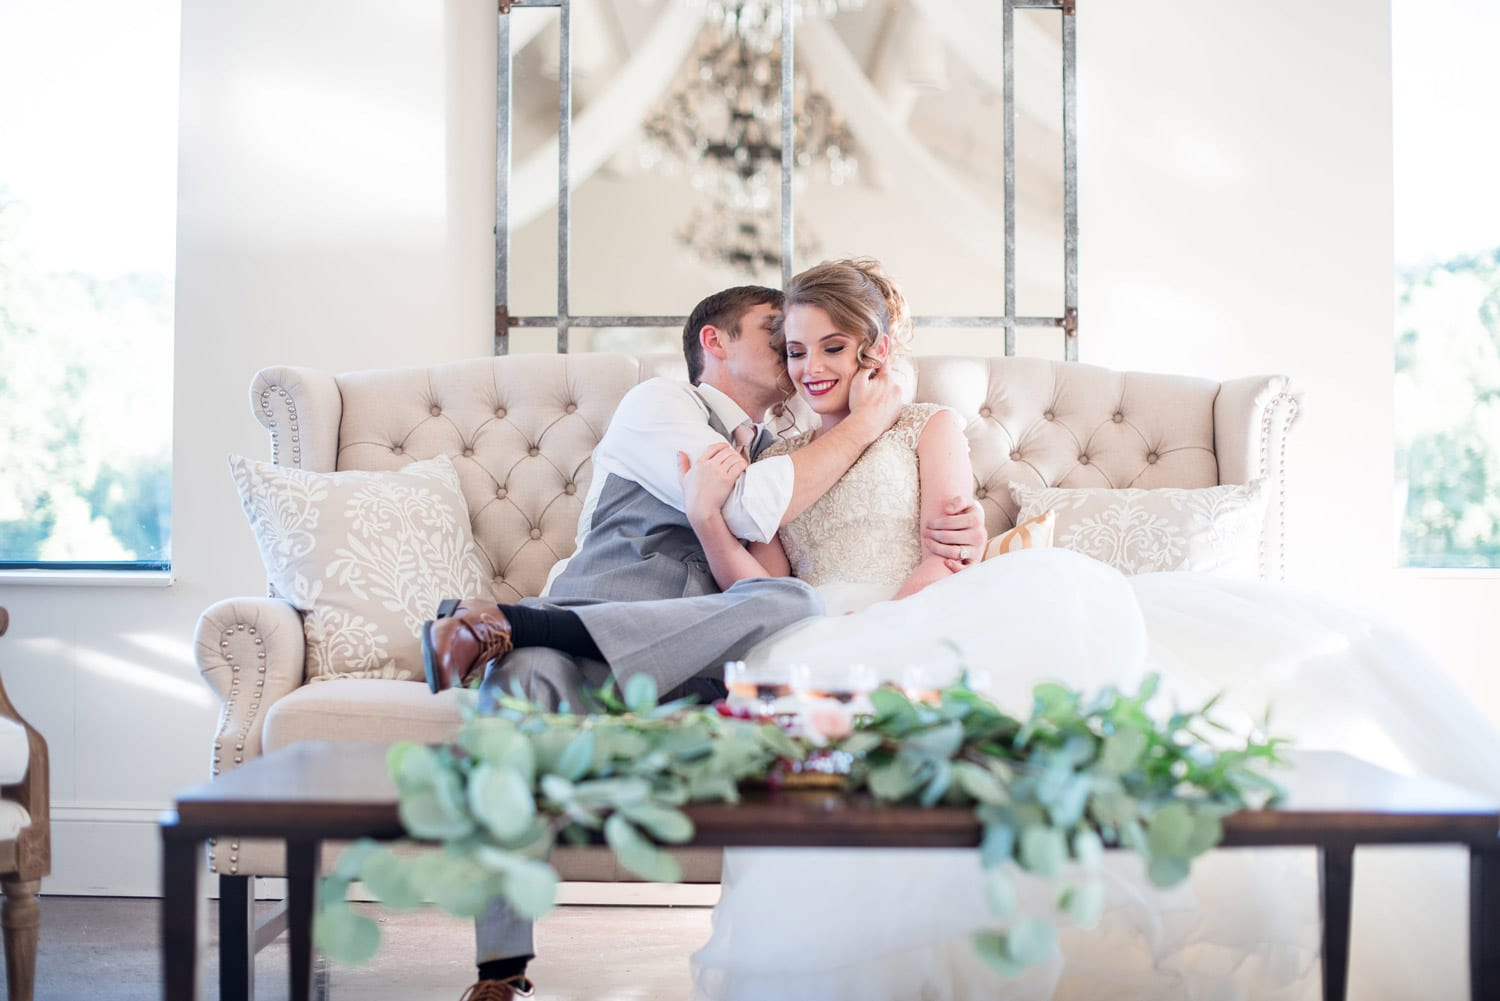 Bride and groom caress each other on love seat